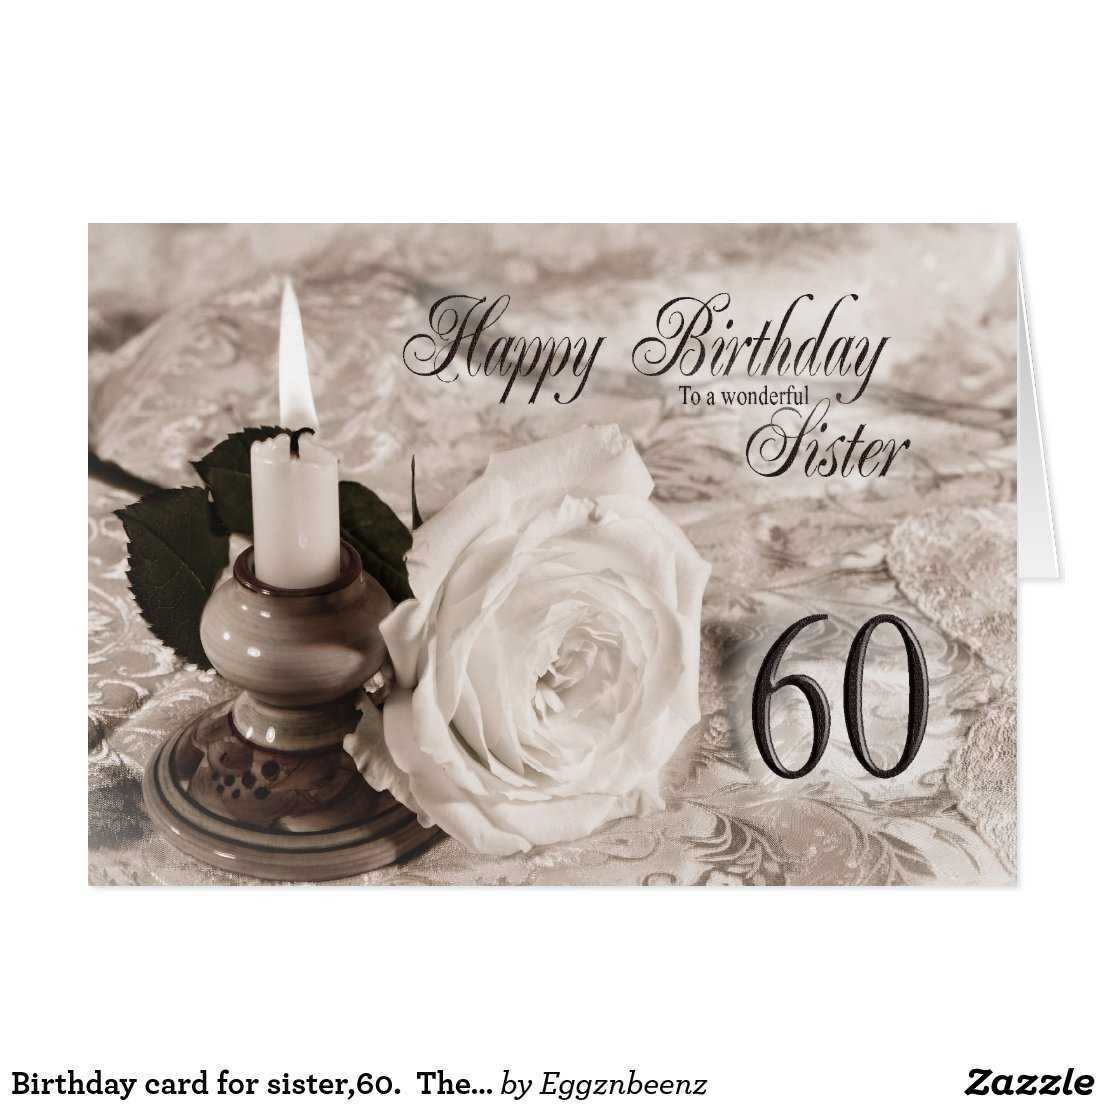 Birthday card for sister 60